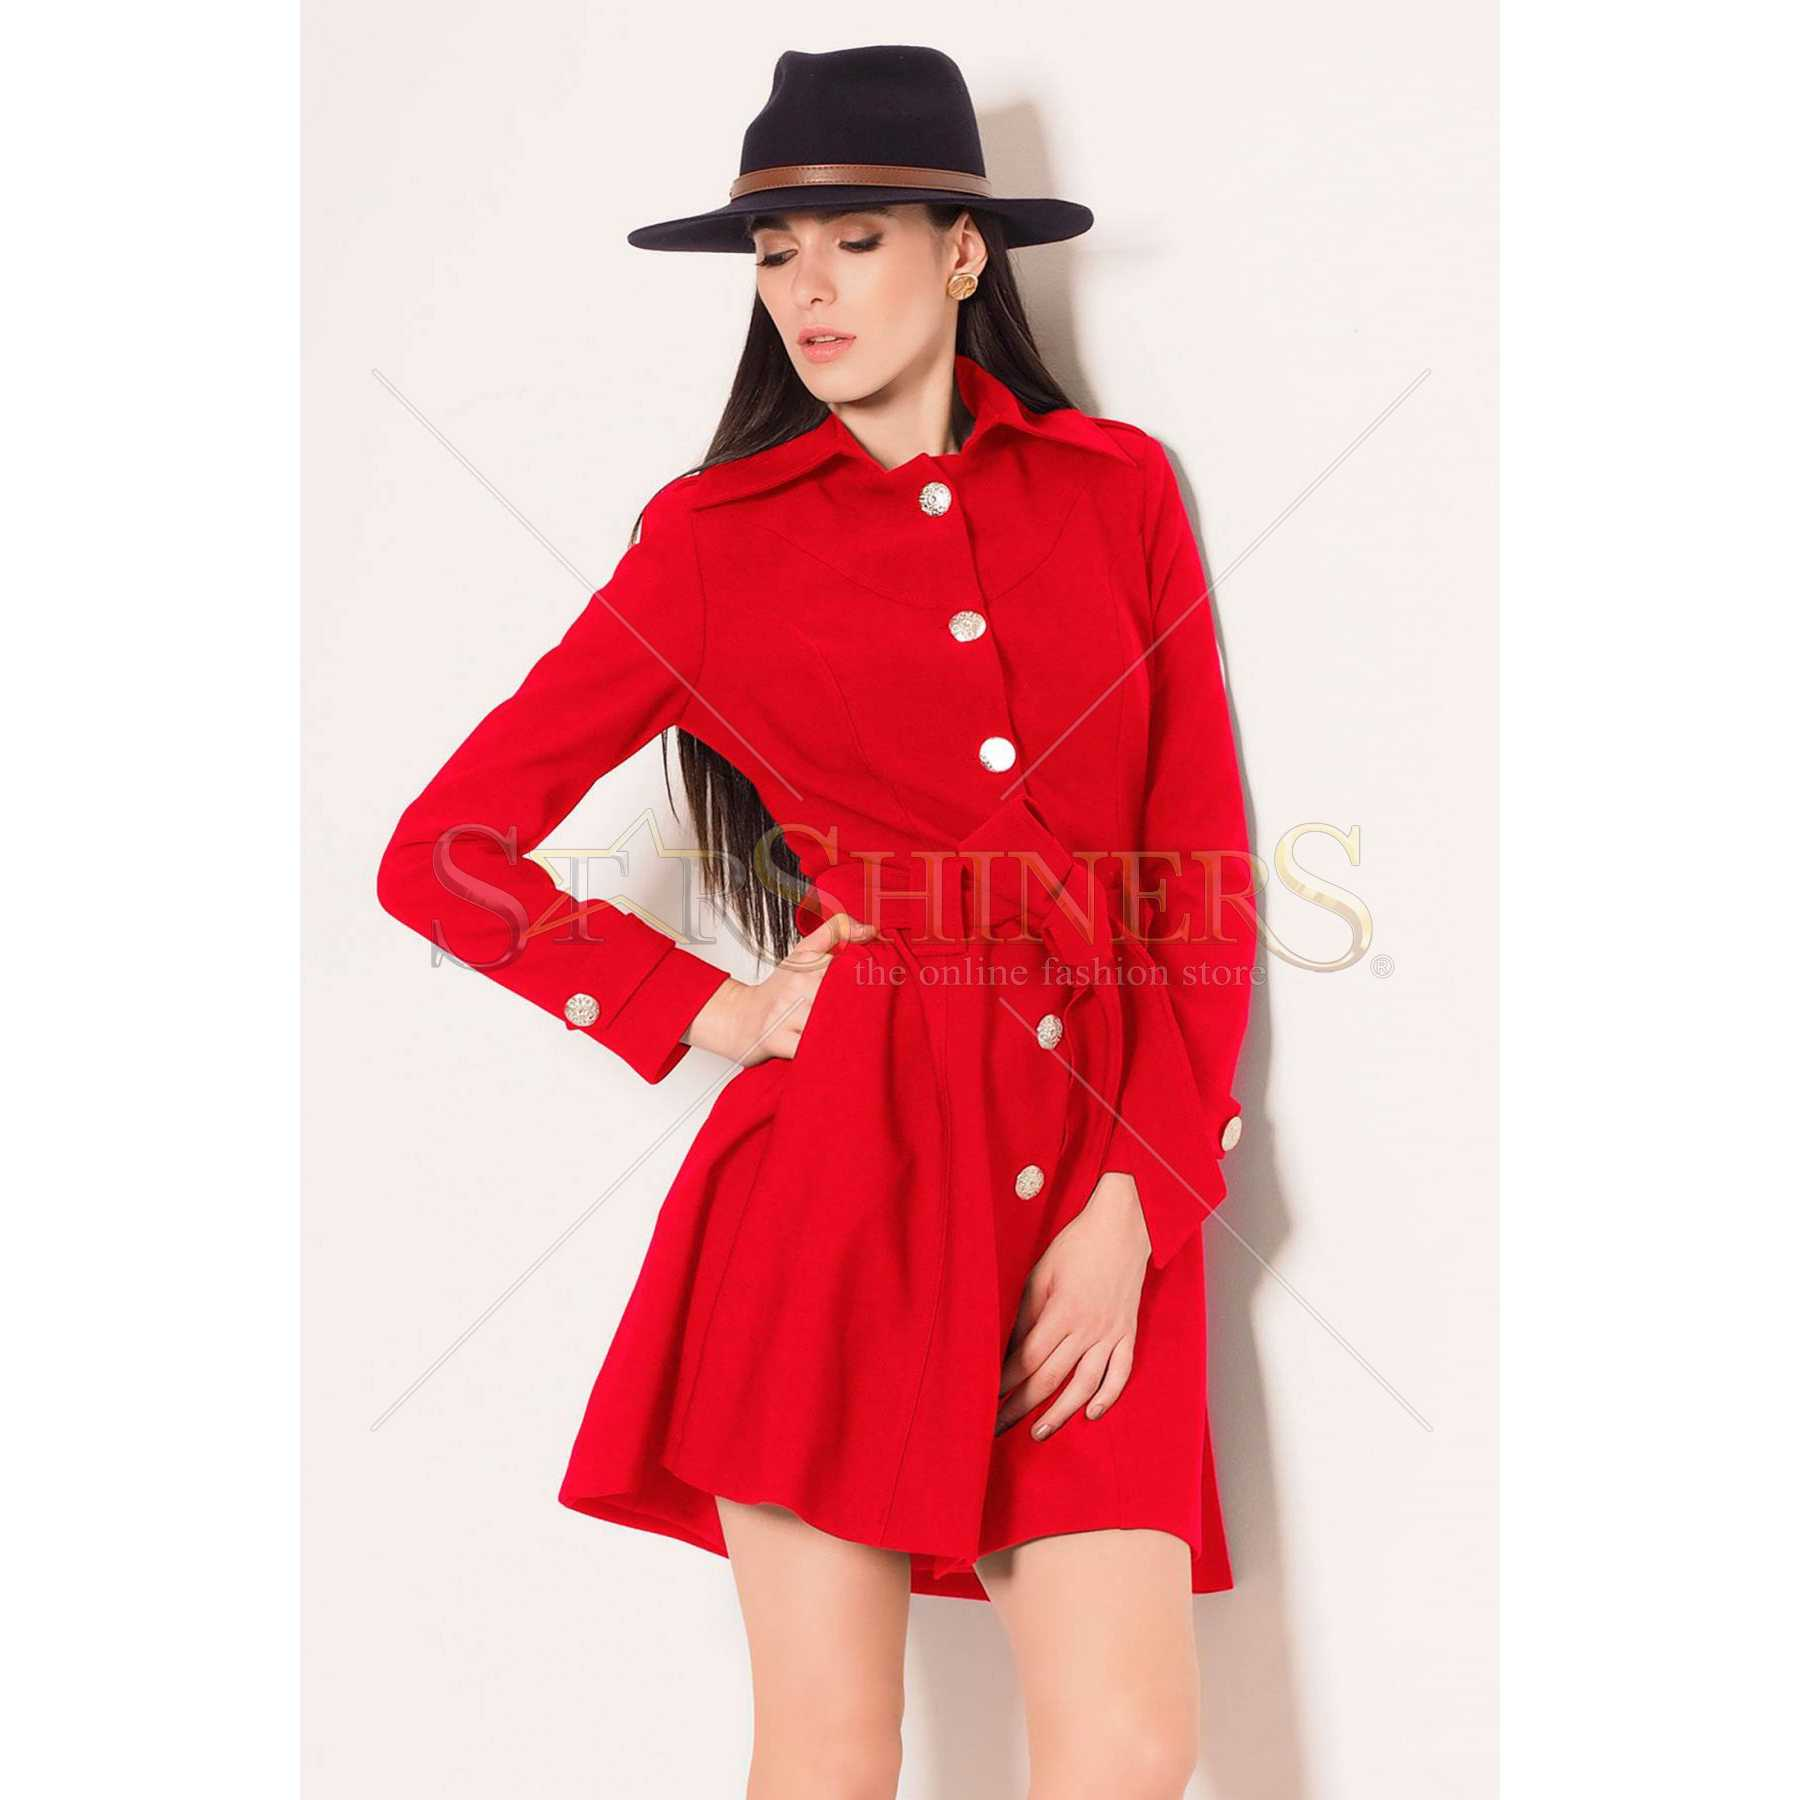 Trench Artista Early Riser Red trench dama